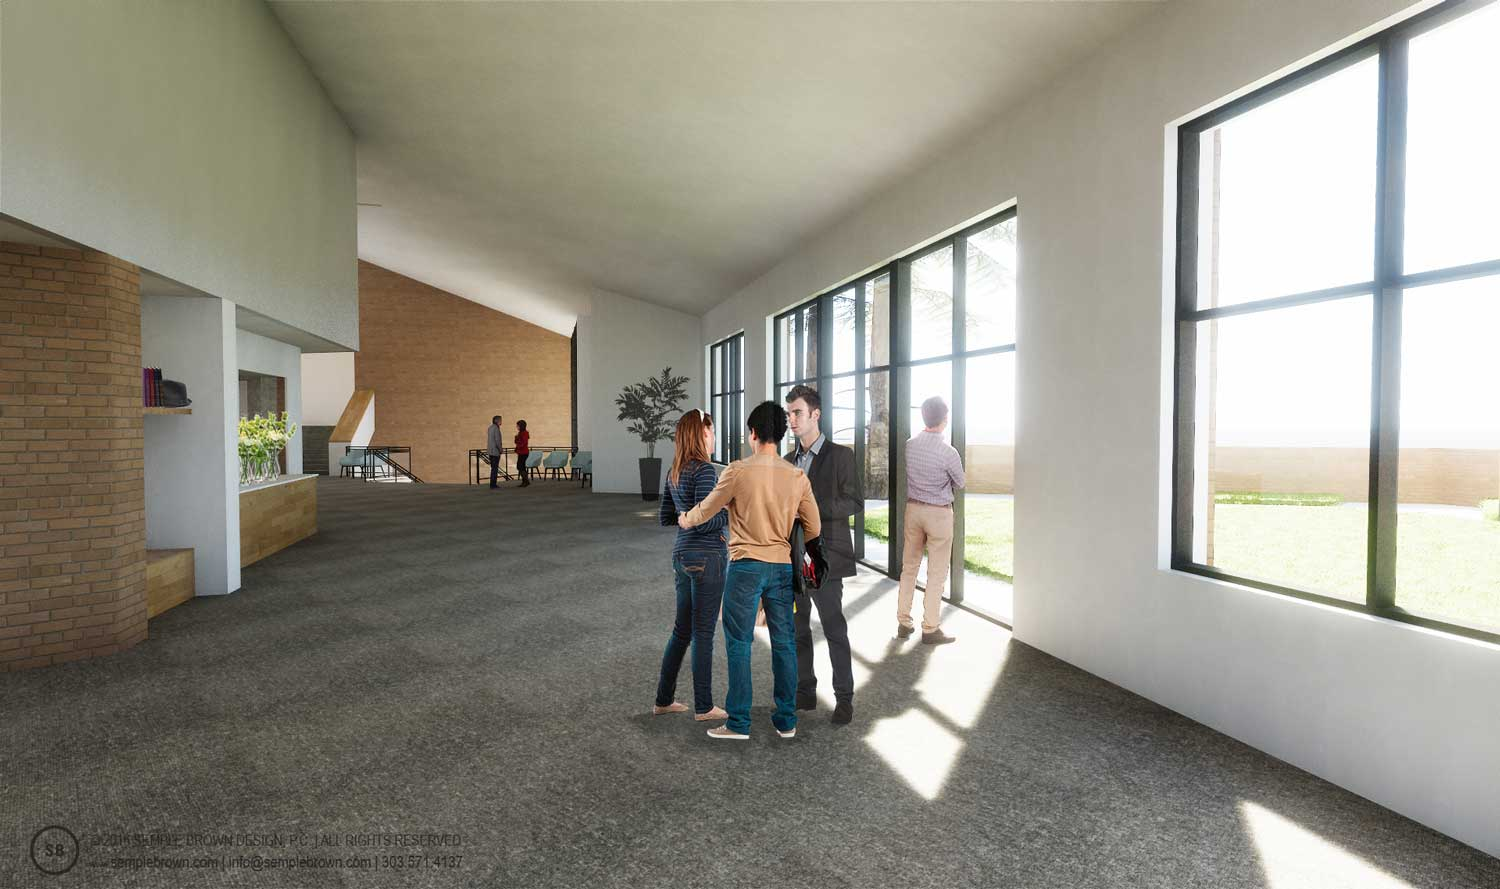 Proposed Wellshire Church Narthex Interior, looking South